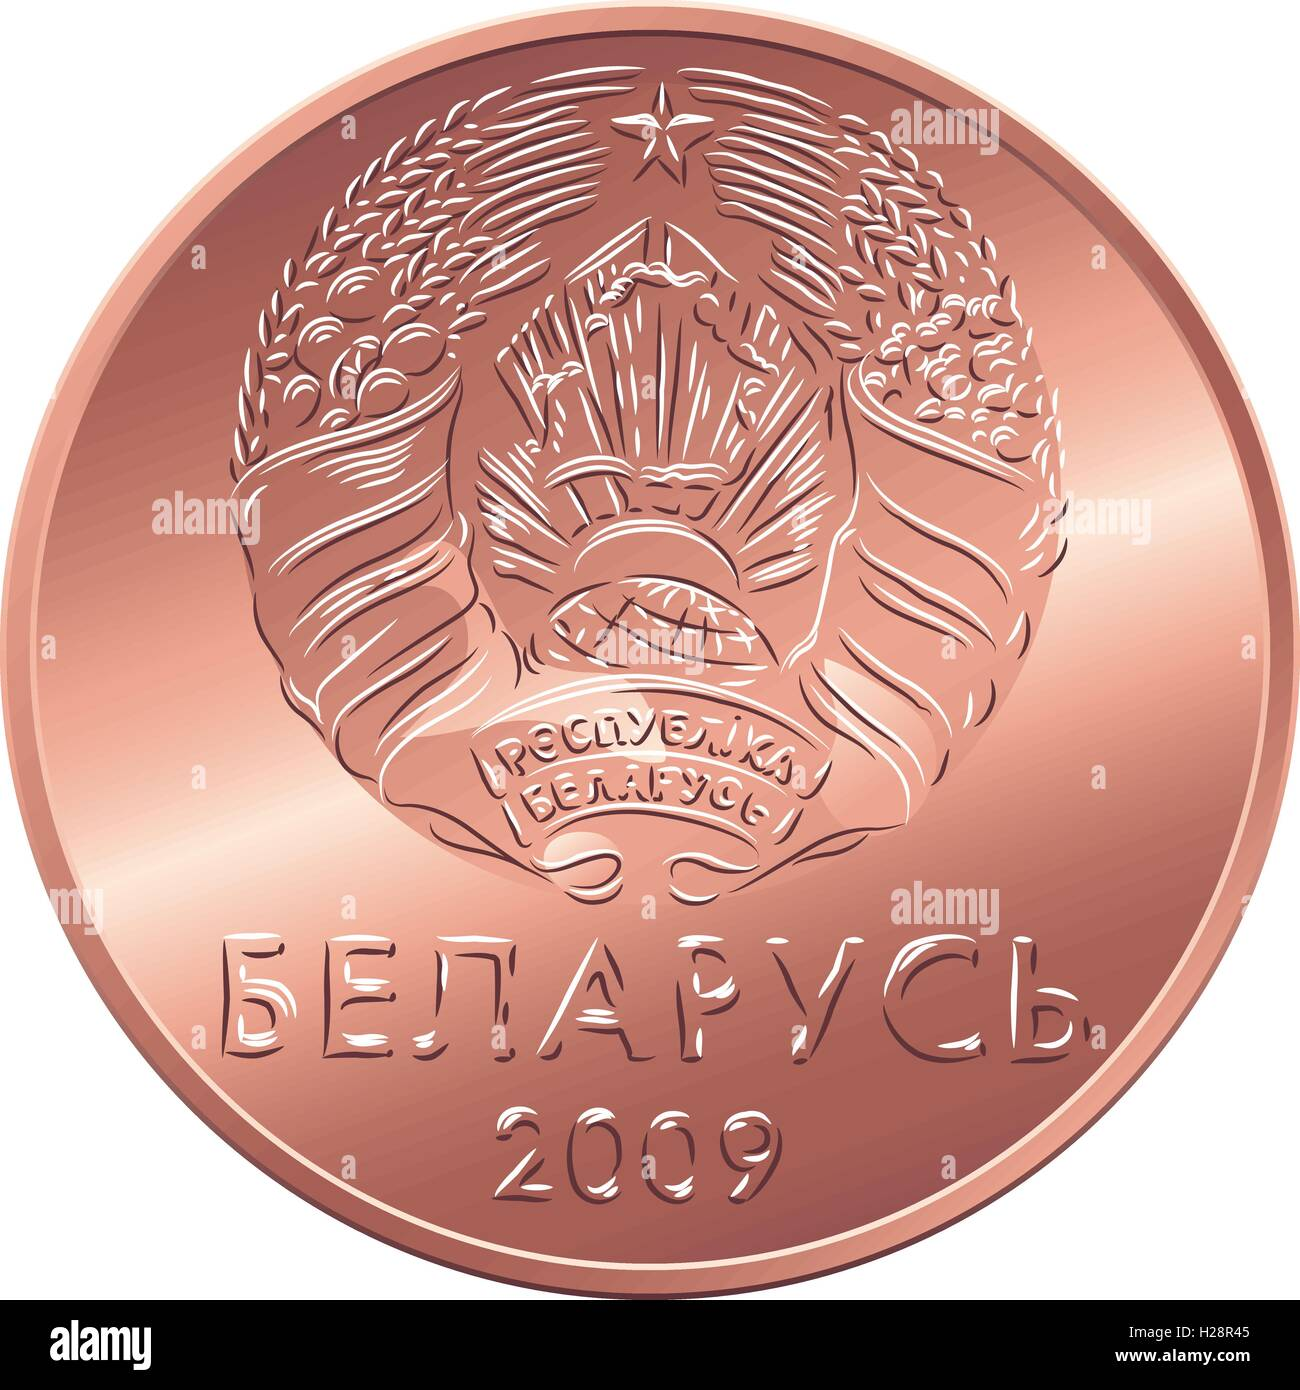 Obverse new Belarusian Money coins - Stock Image